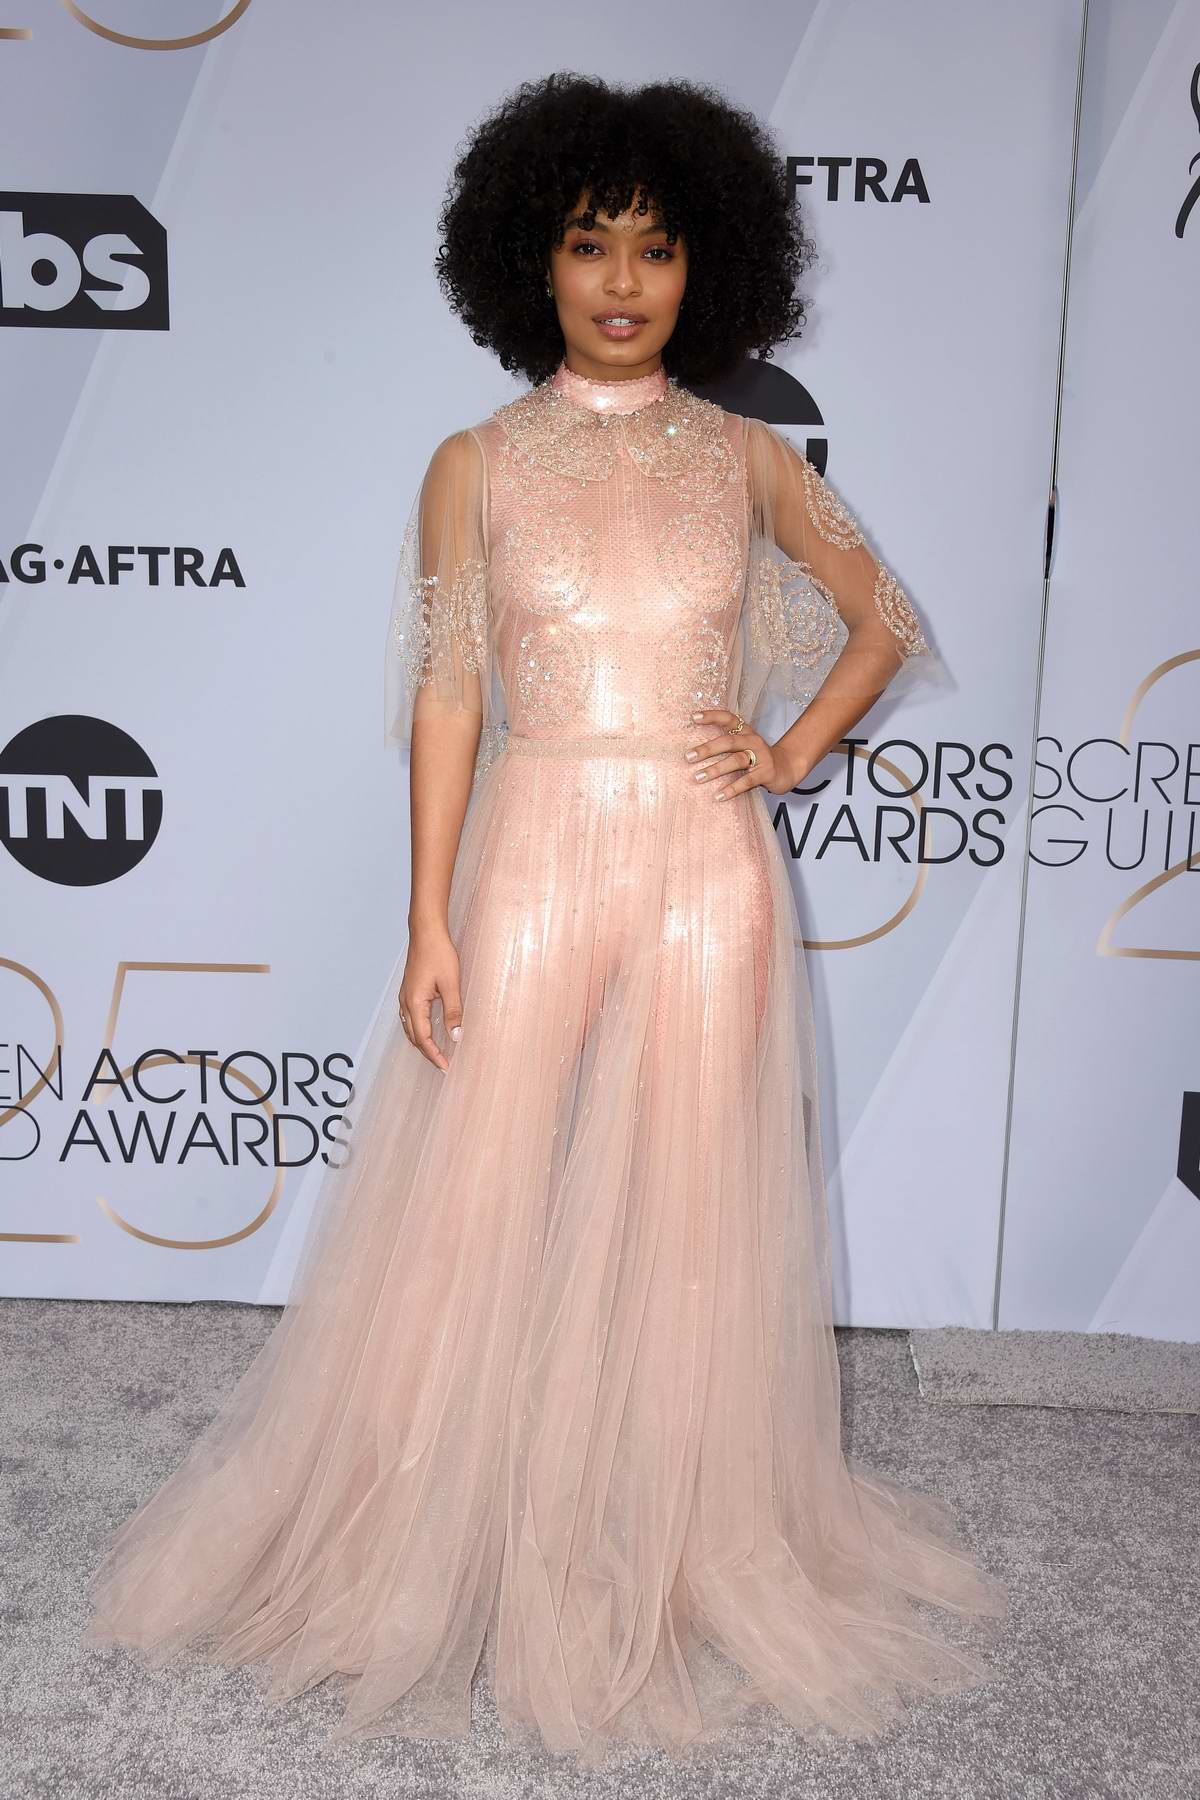 Yara Shahidi attends the 25th Annual Screen Actors Guild Awards (SAG 2019) at the Shrine Auditorium in Los Angeles